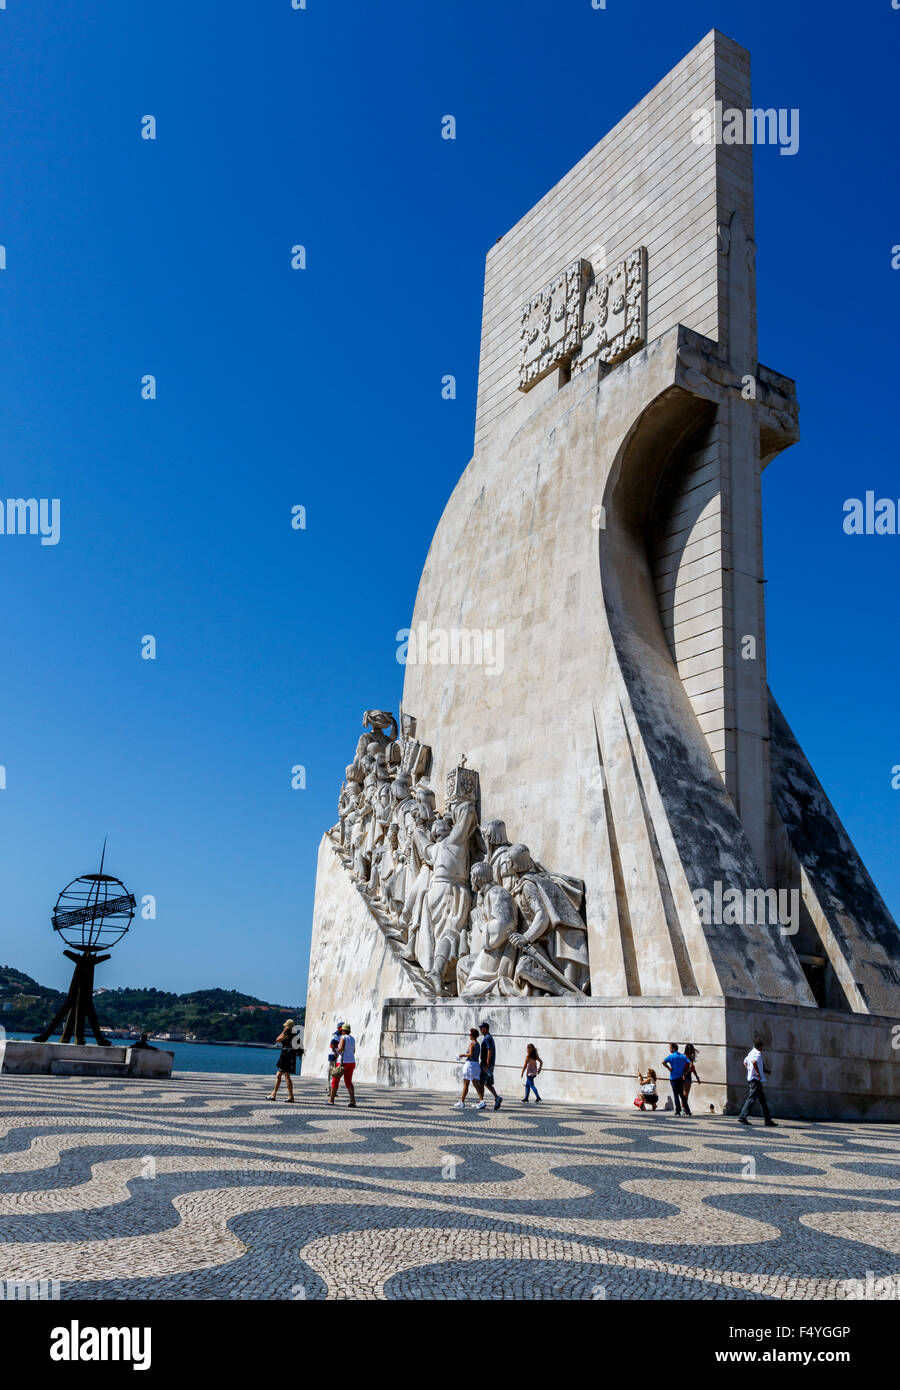 Monument to the Discoveries (Padro dos Descobrimentos) against a clear blue sky Lisbon Portugal - Stock Image